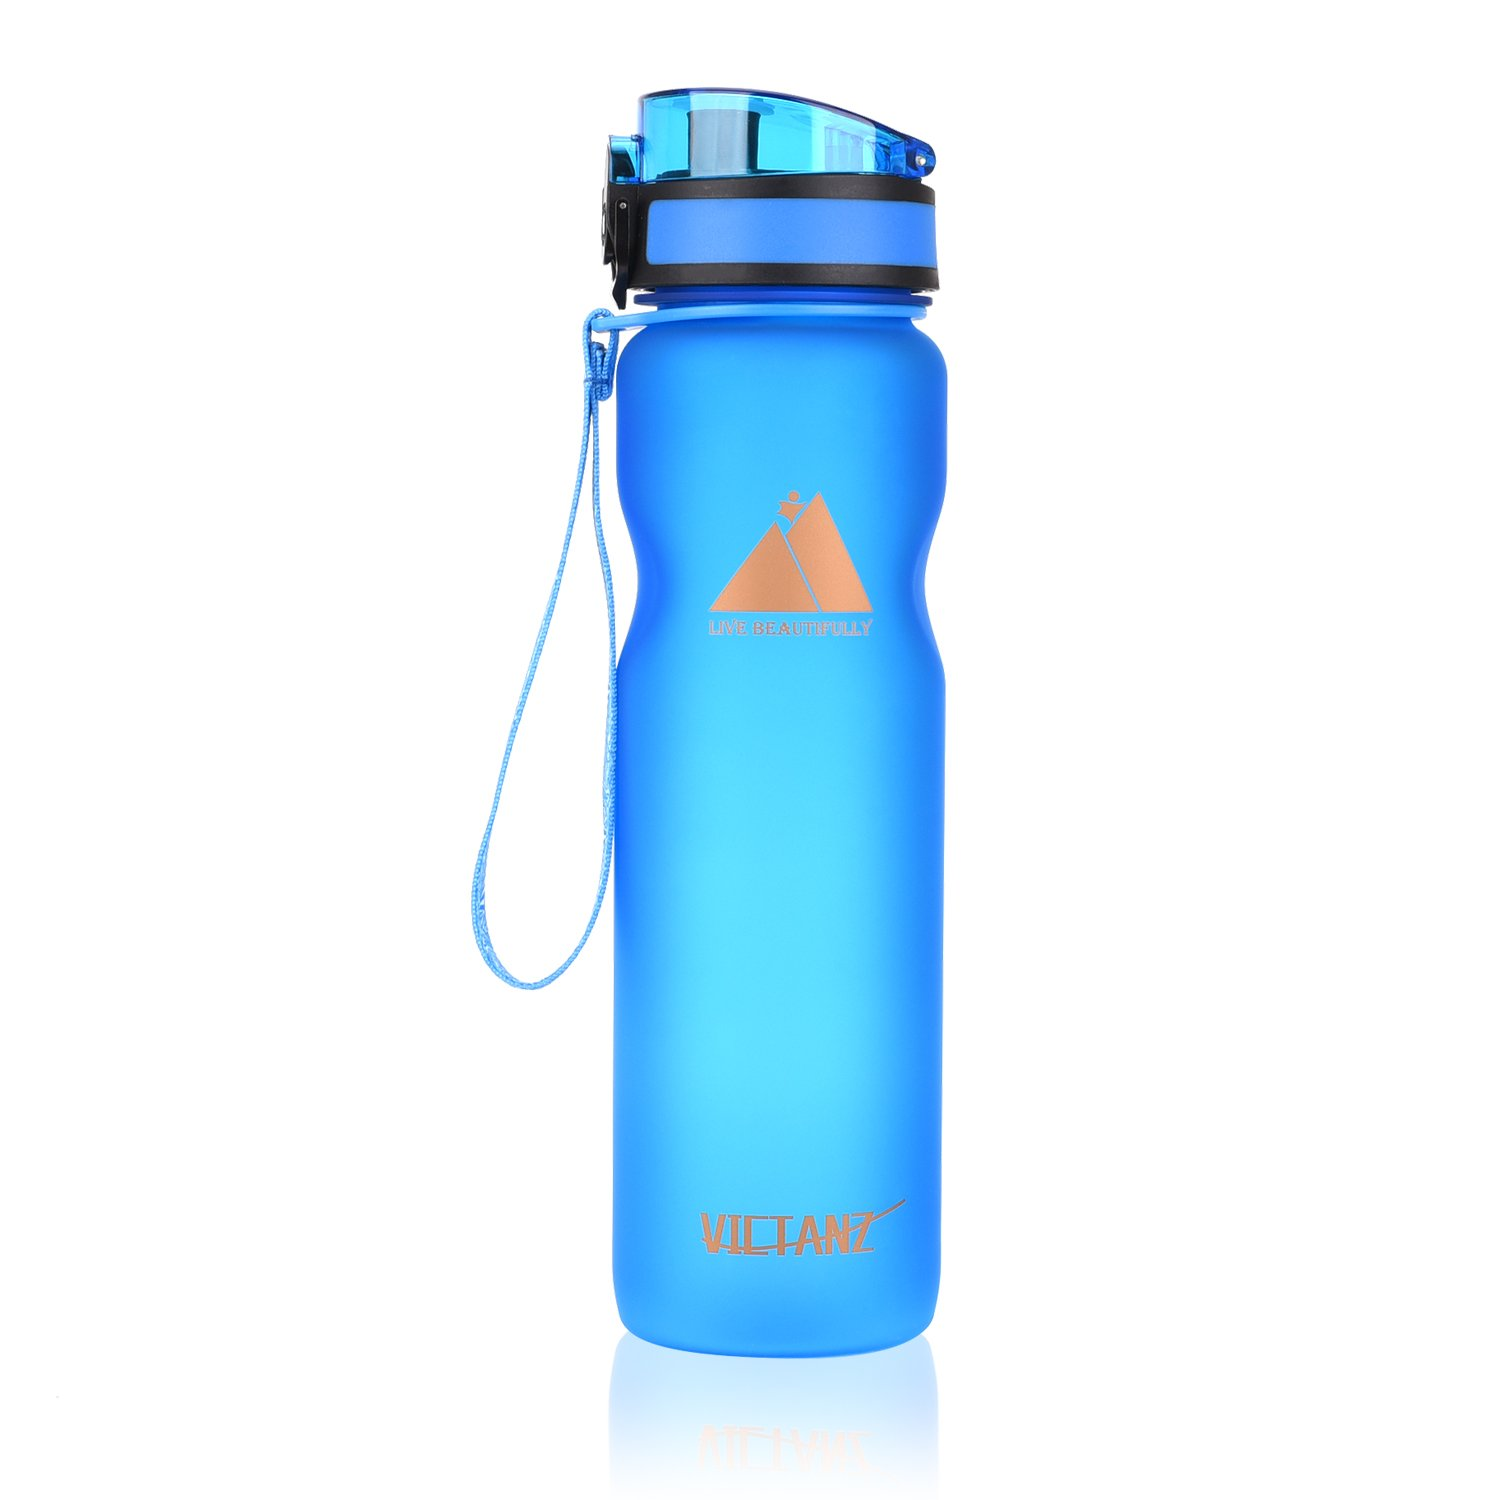 Fast Flow Open with 1-Click Victanz Sports Water Bottle 1 liter//1000ml//32oz Large Drinking Bottles with Filter 100/% BPA Free Eco-Friendly Tritan Co-Polyester Plastic Leak Proof